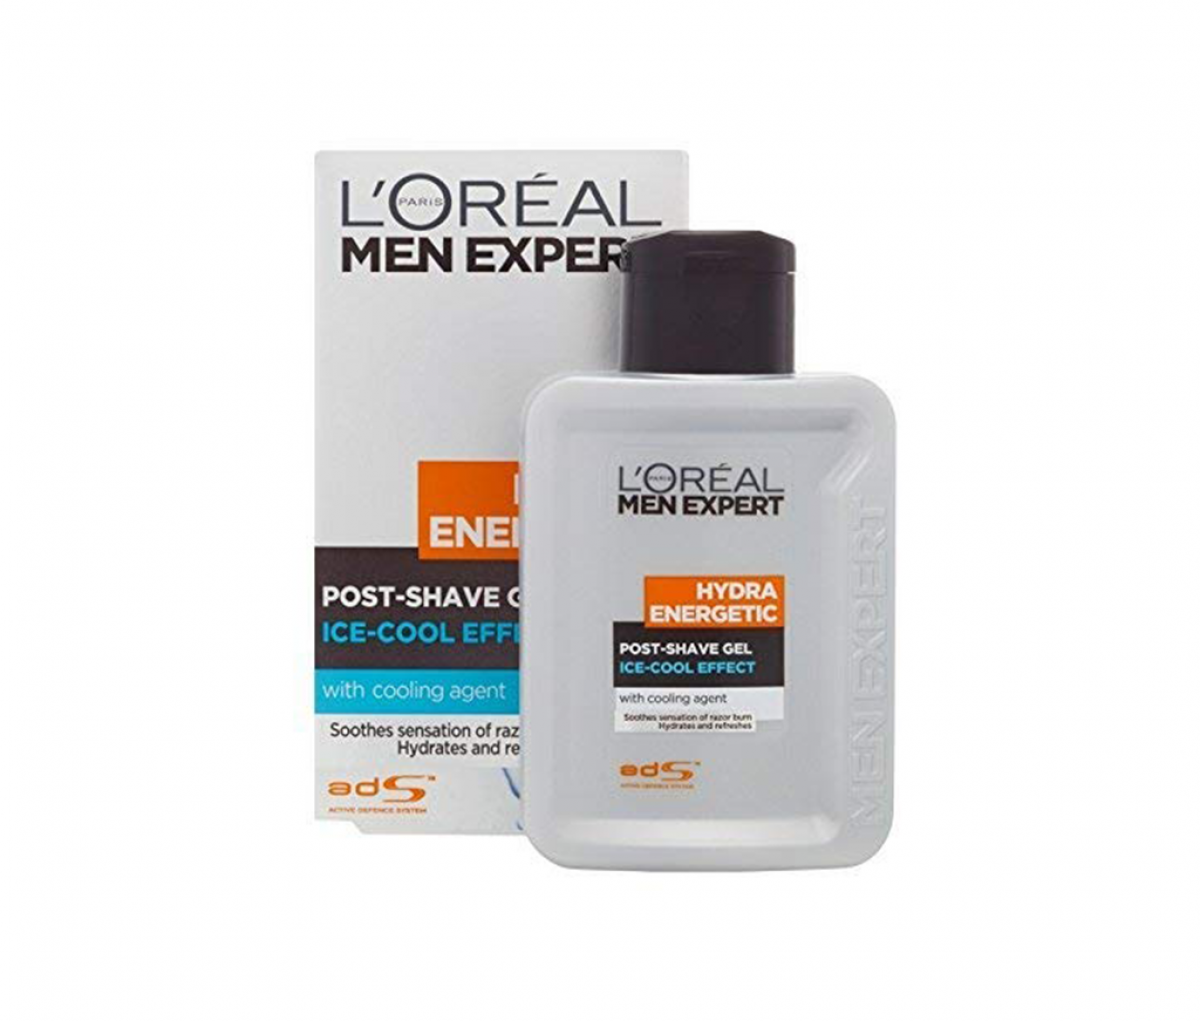 L'Oreal  Hydra Energetic After Shave Gel